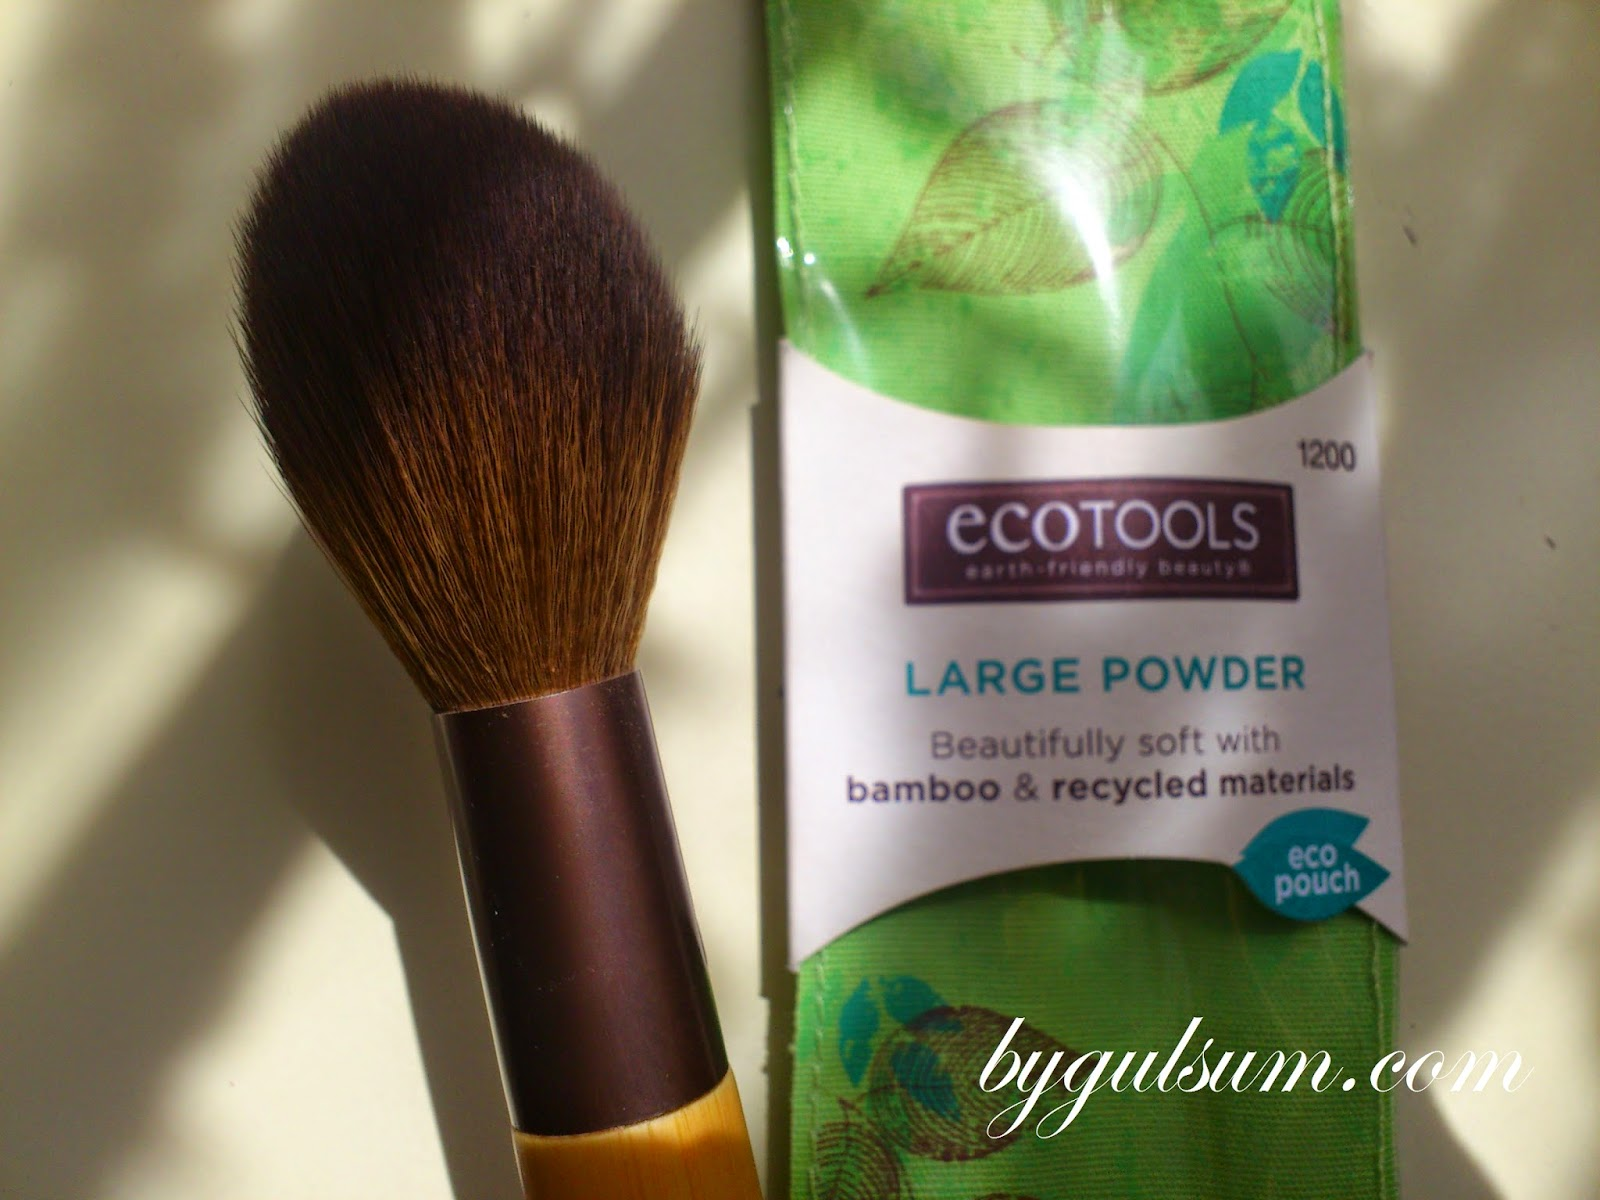 Ecotools Large Powder